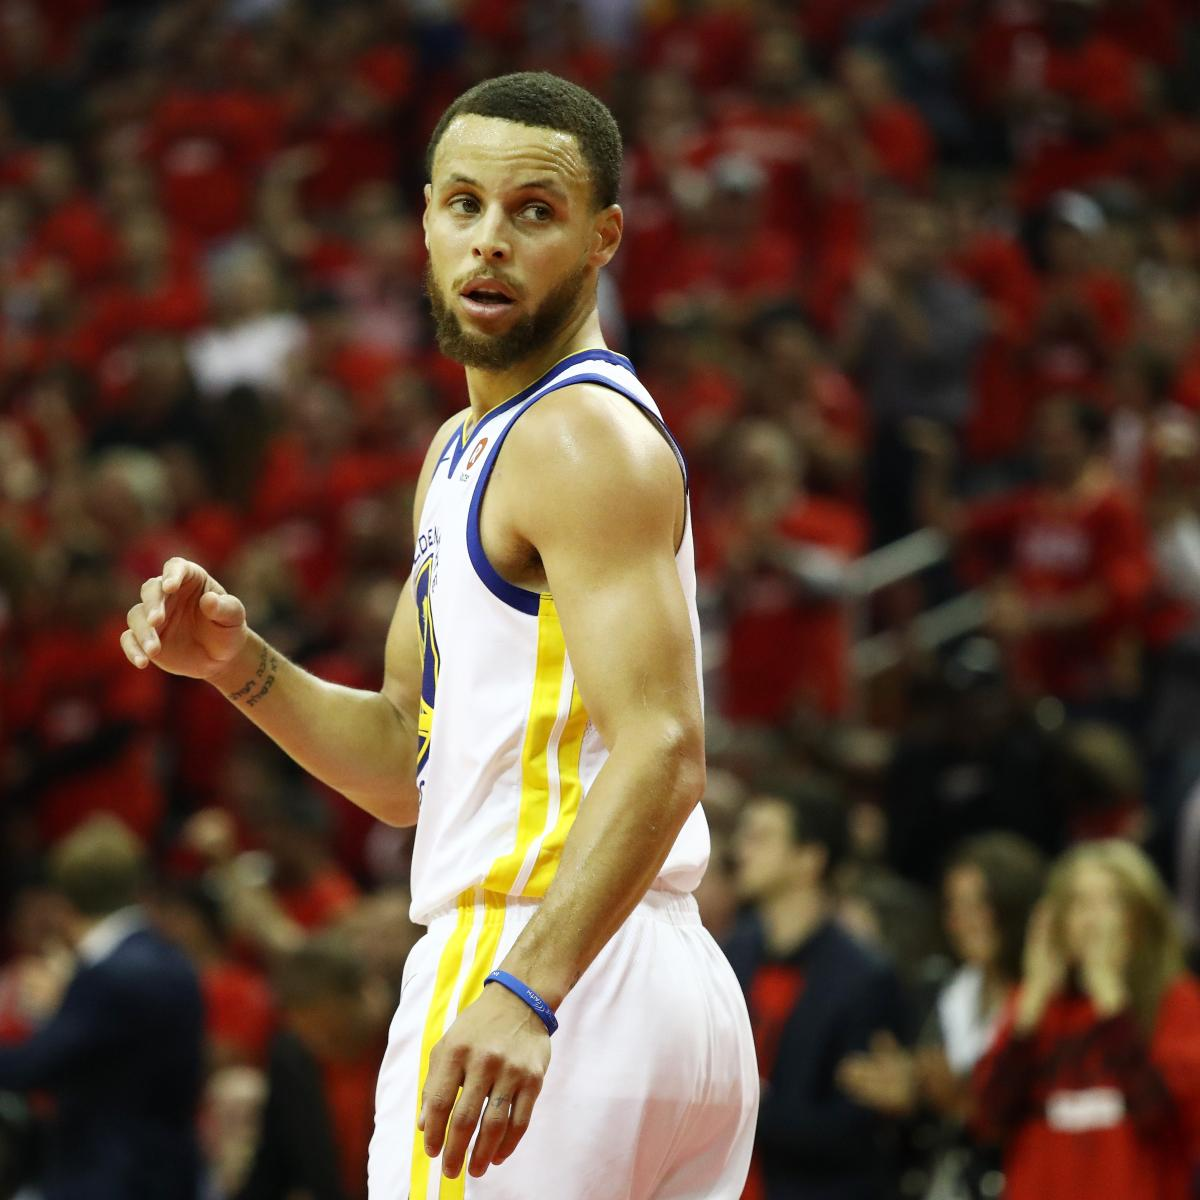 Rockets Vs Warriors 2018 19: Stephen Curry 'Not Losing Any Sleep' Over Offensive